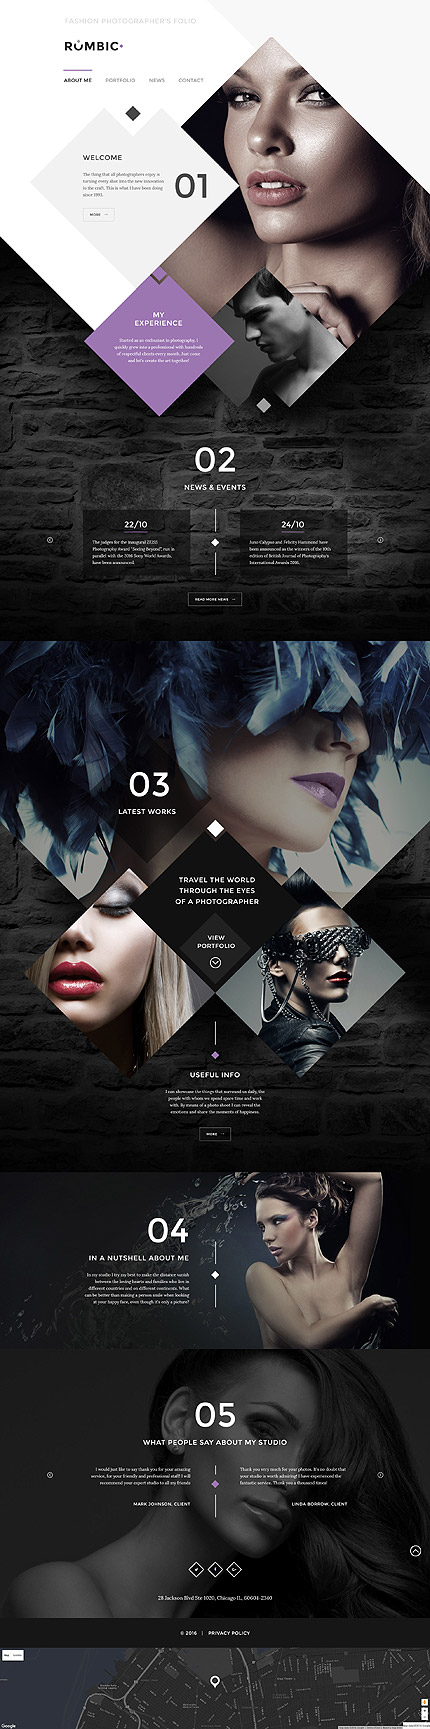 Art & Photography Most Popular website inspirations at your coffee break? Browse for more Responsive JavaScript Animated #templates! // Regular price: $72 // Sources available: .HTML,  .PSD #Art & Photography #Most Popular #Responsive JavaScript Animated